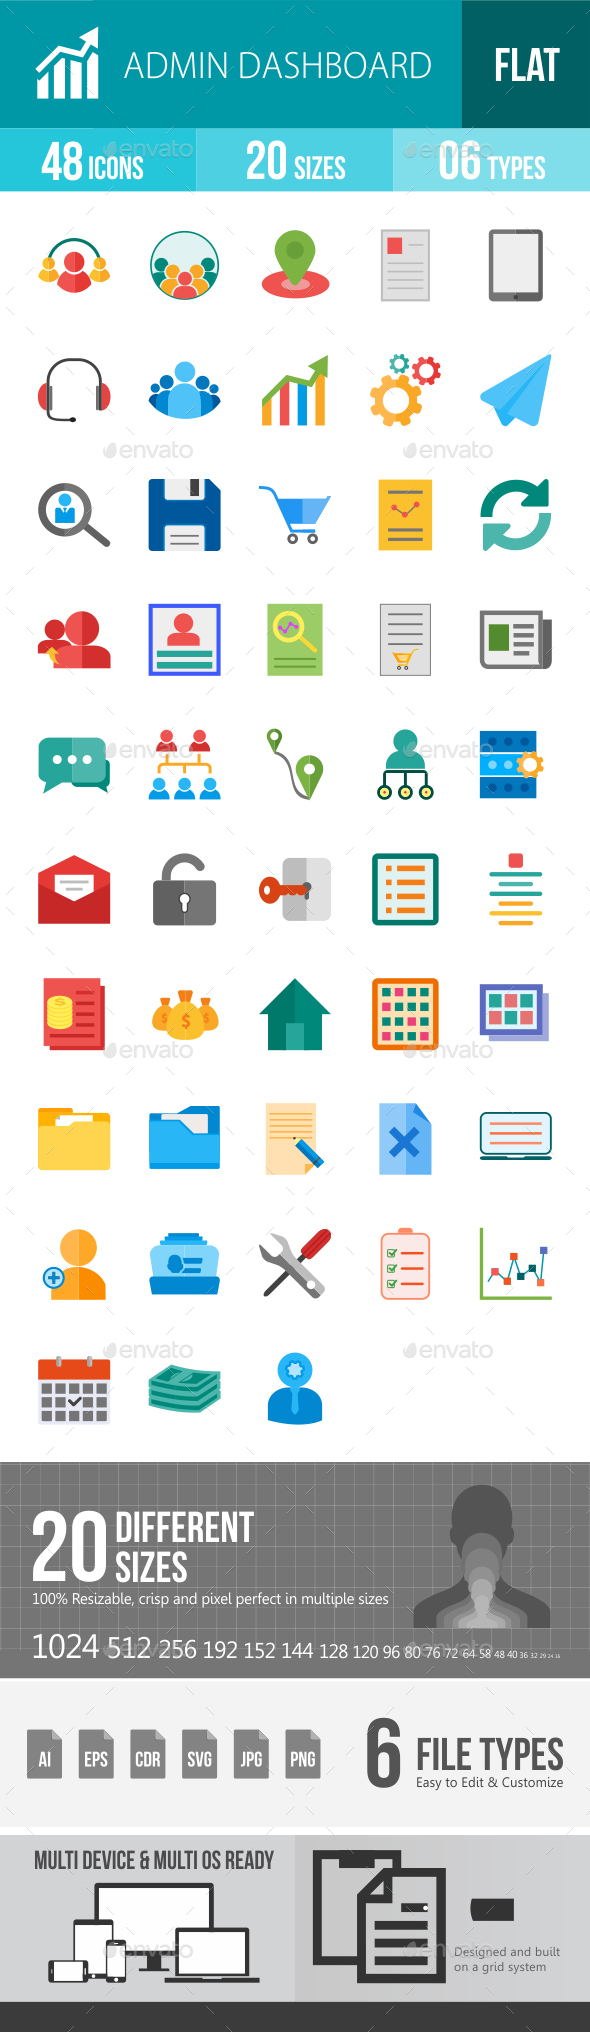 Admin Dashboard Flat Multicolor Icons - Icons